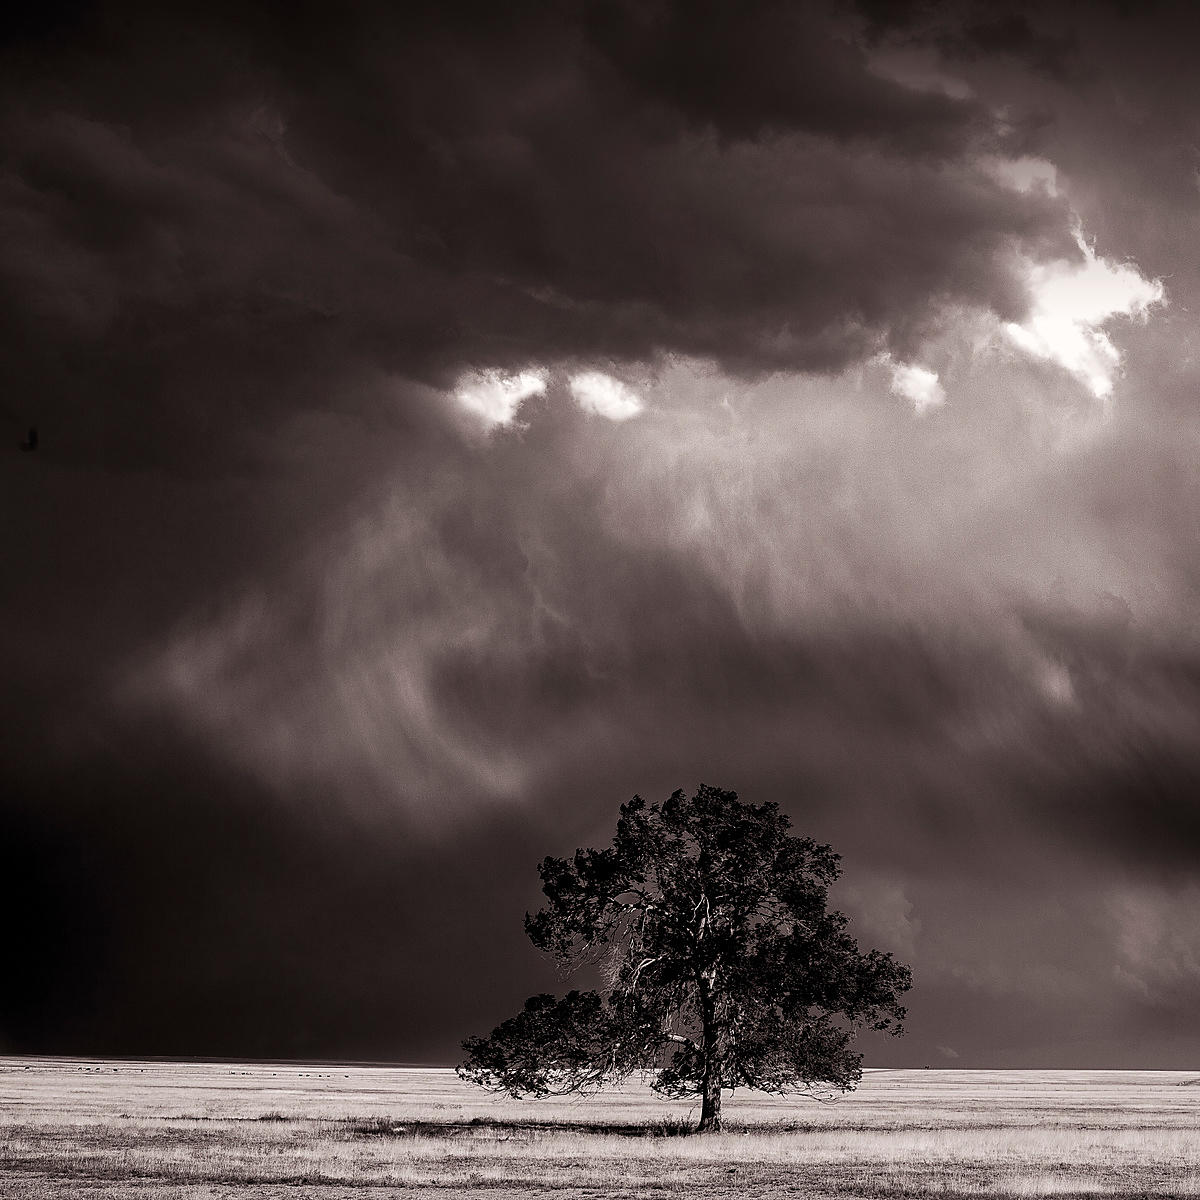 2014_06_06-Prairie_tree_and_storm_New_Mexico_MG_6420crp1-ts